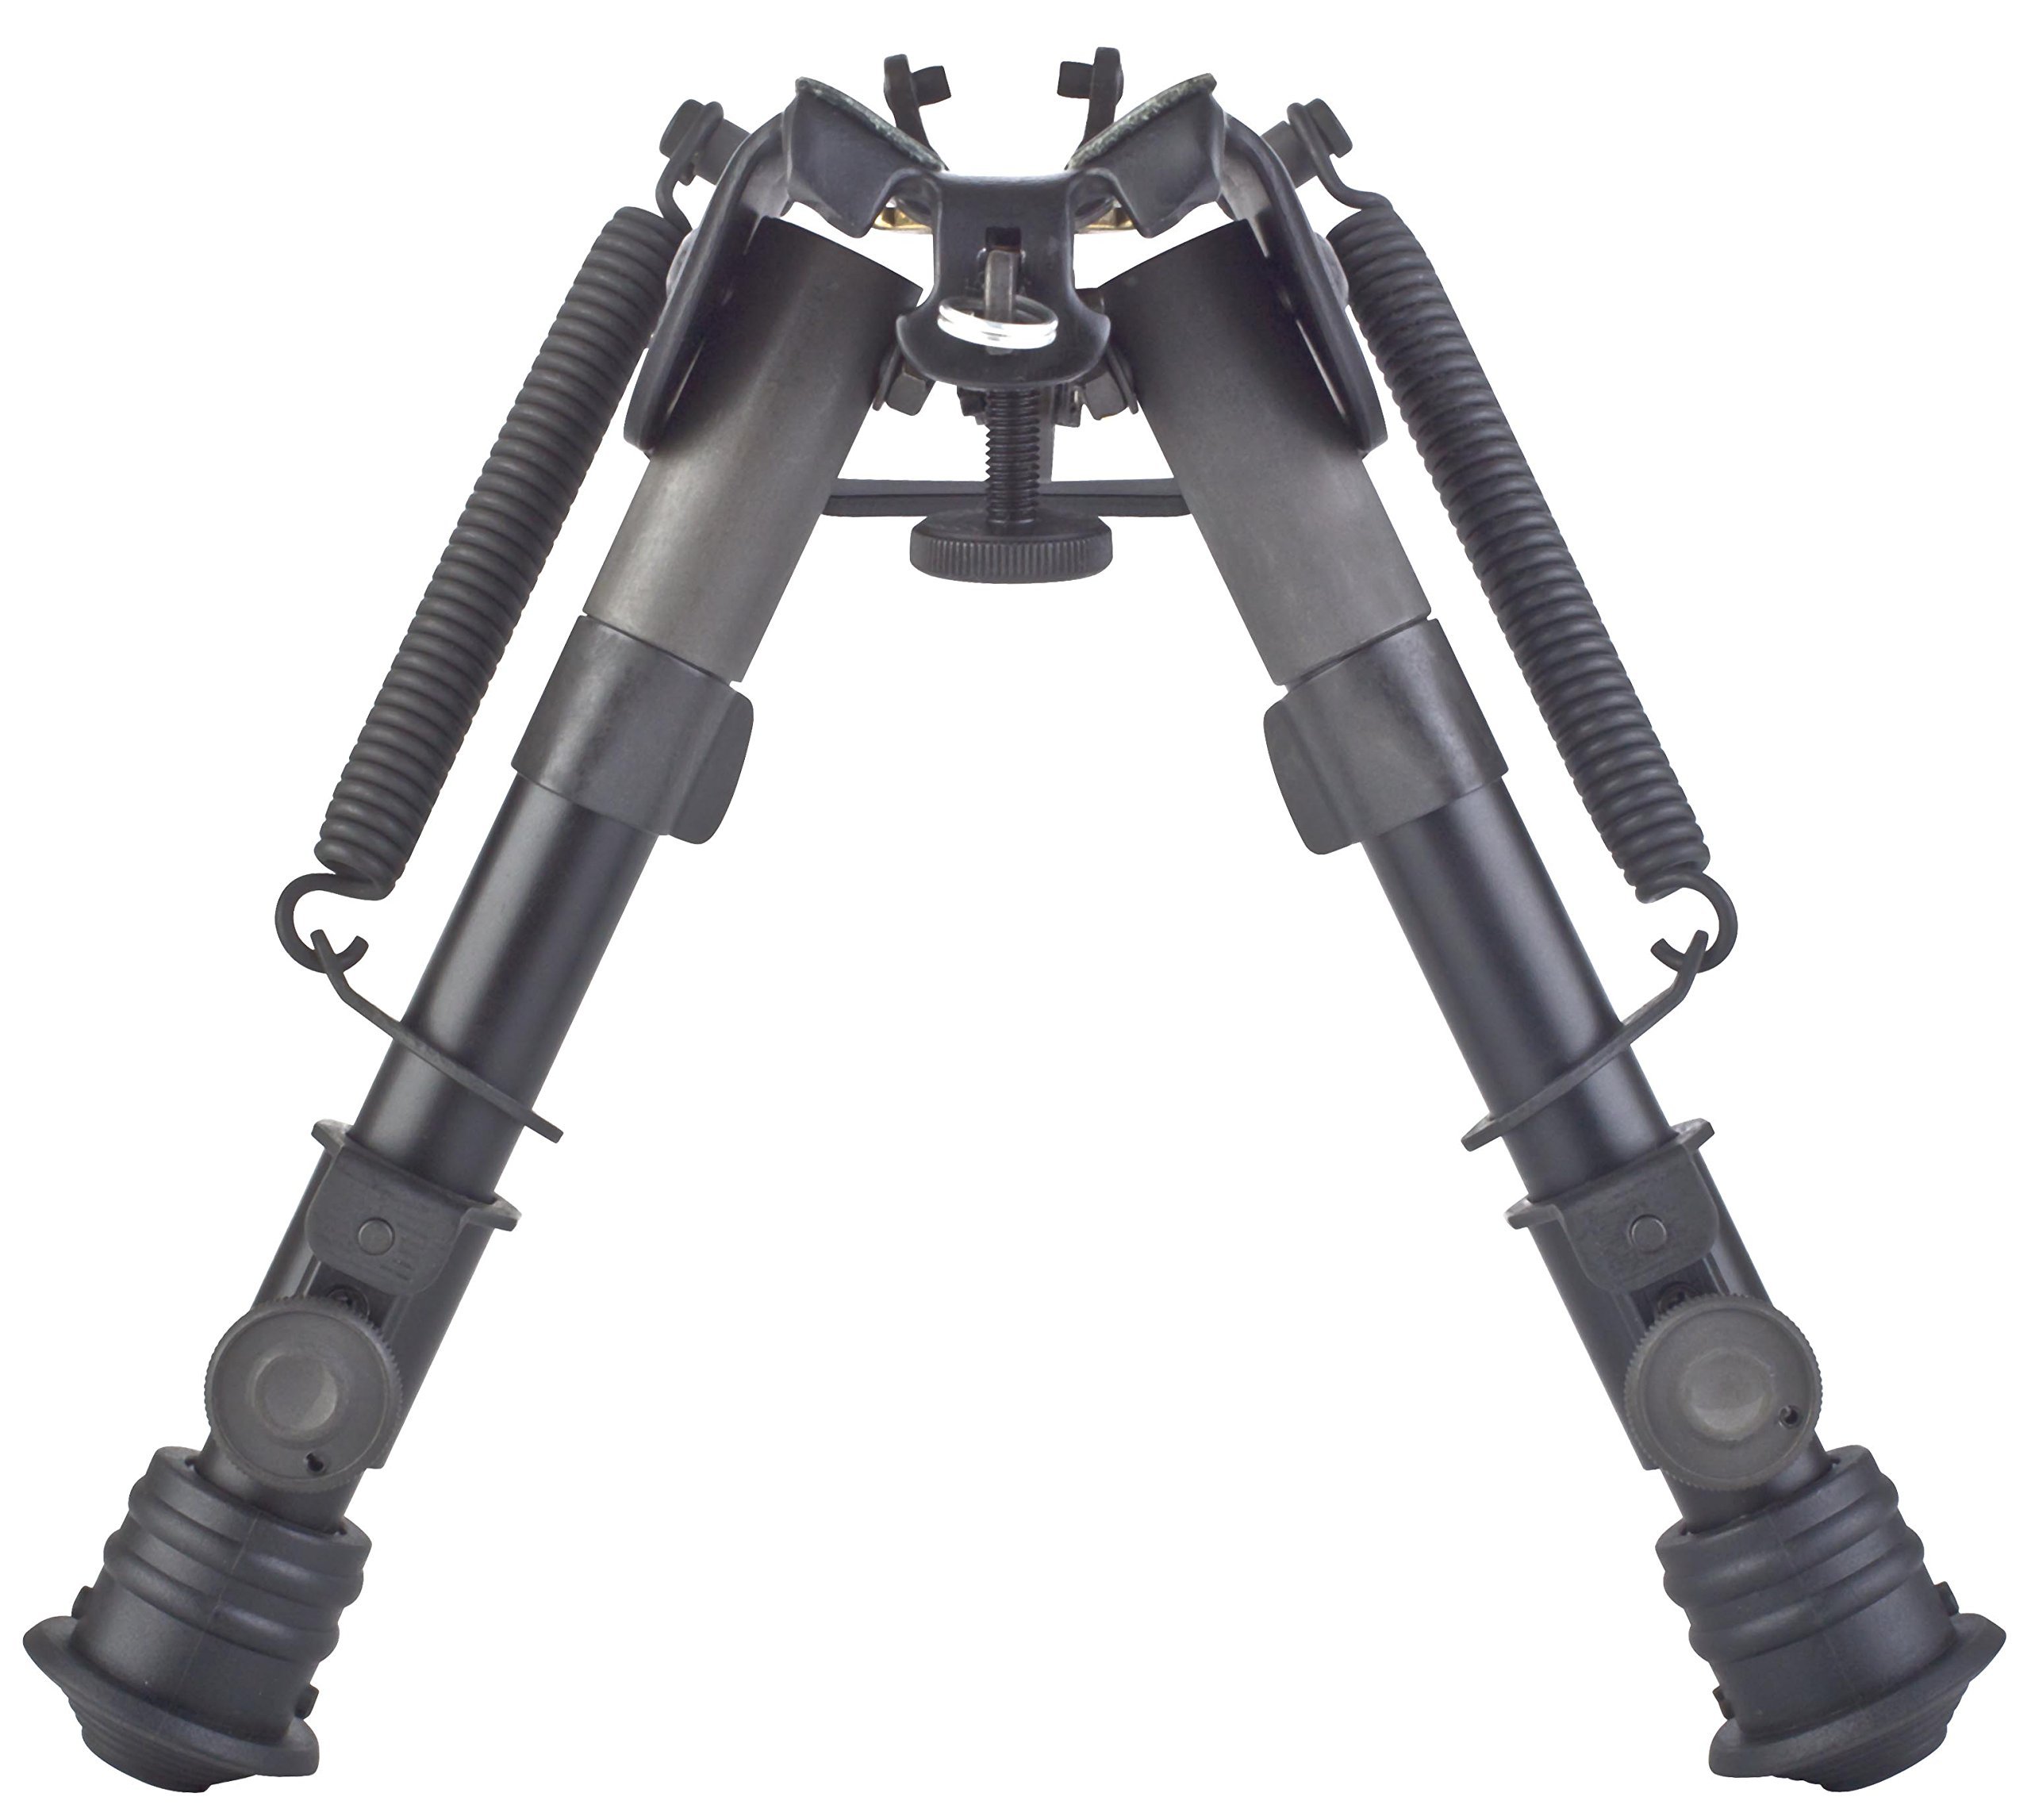 TipTop® EZ Hunting Rifle Bipod 6'' - 9'': Sling Stud Mount, Extendable, Folding, with Sling-attached Hole PN#S3-34659